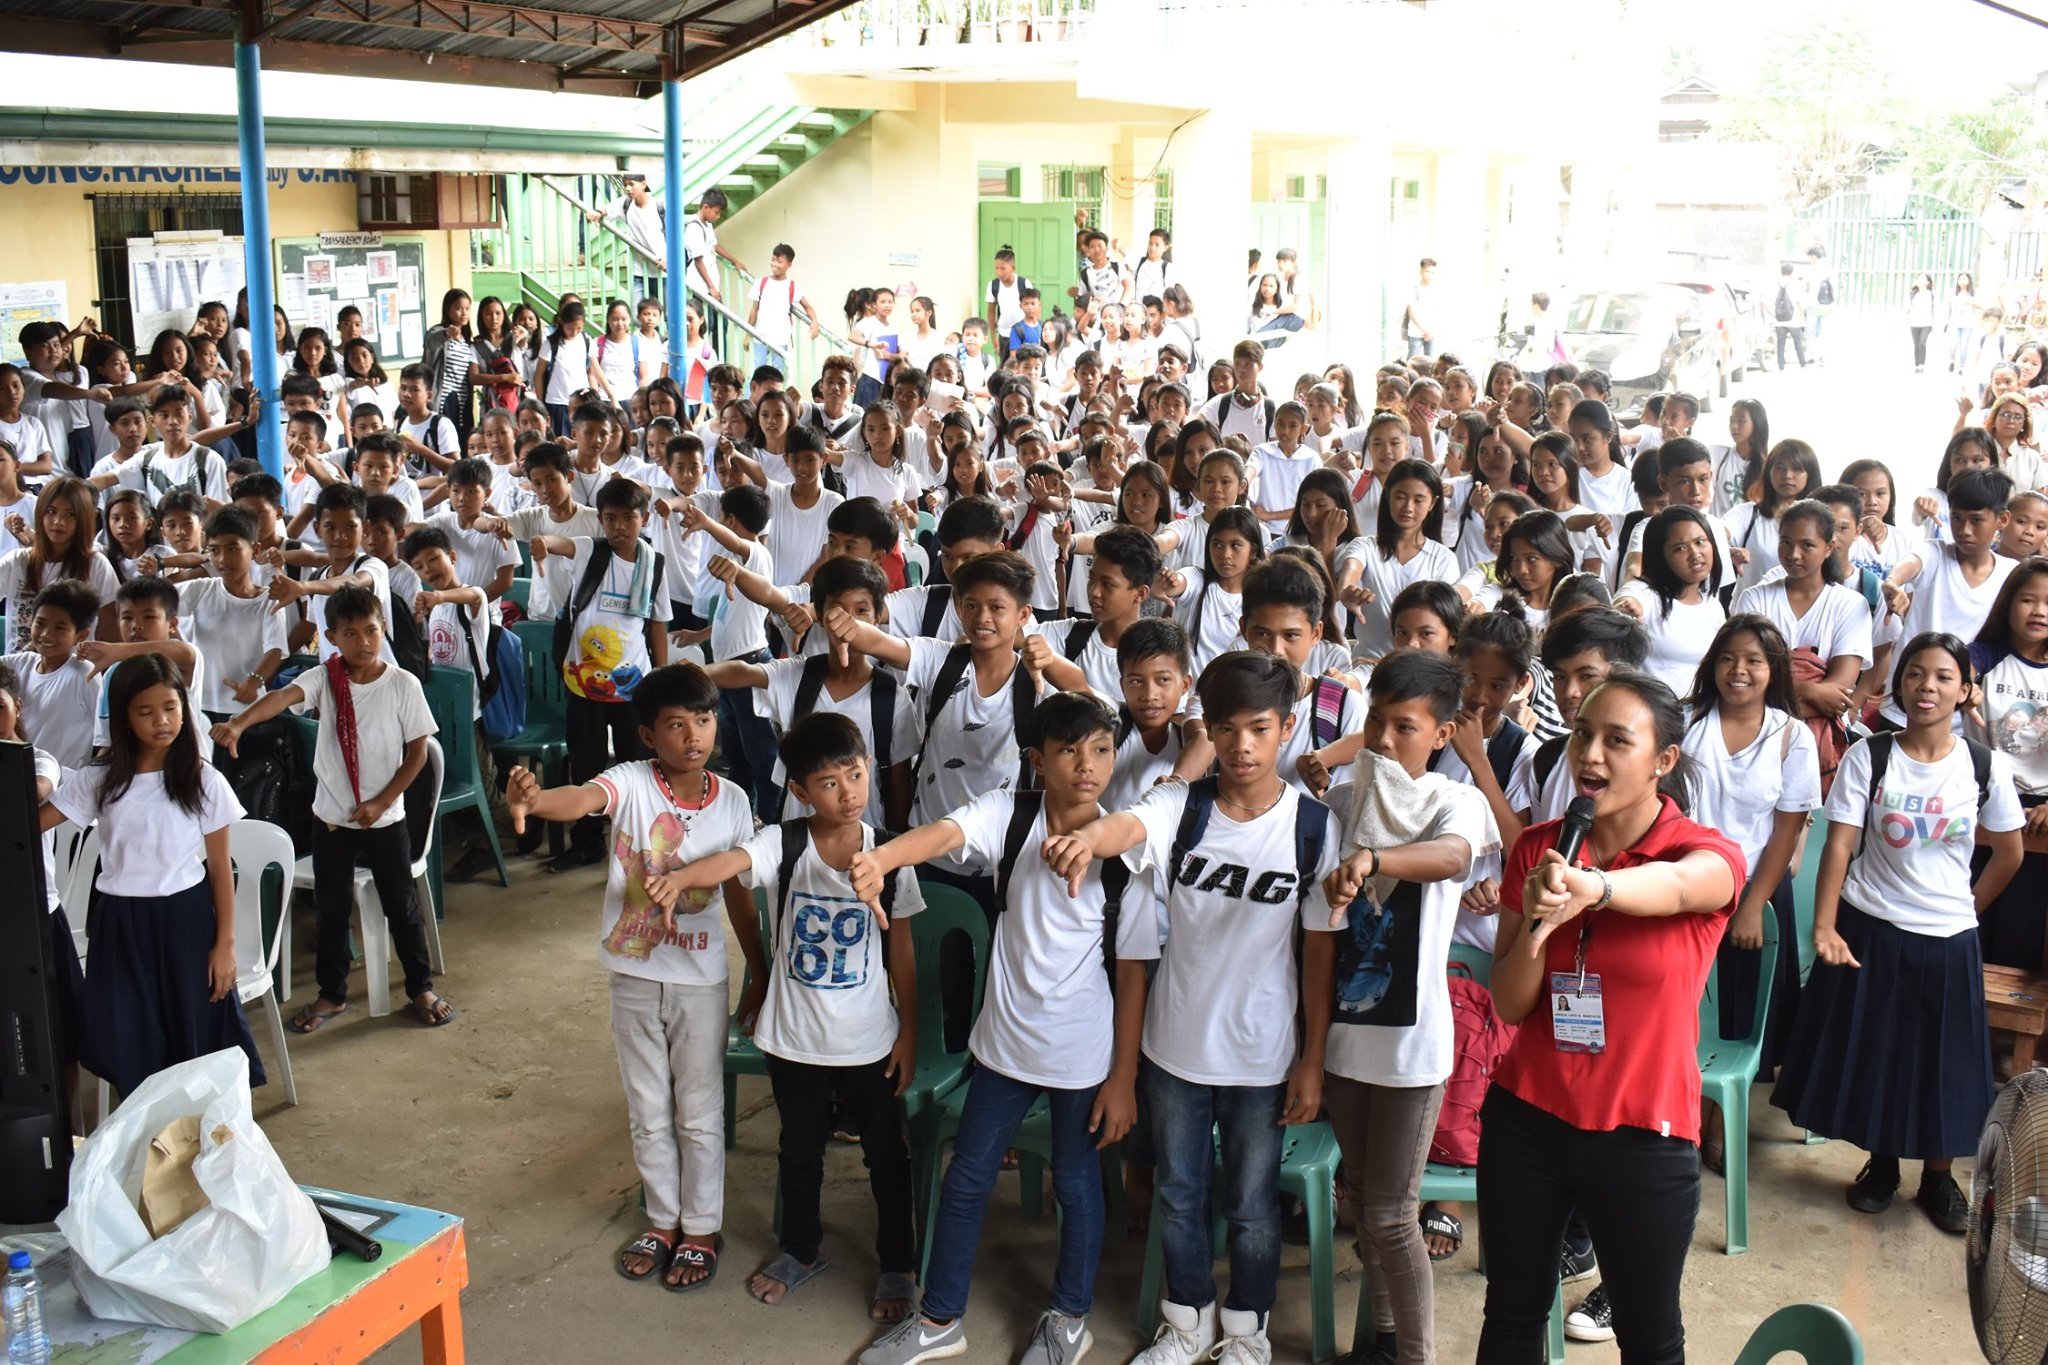 Anti-BullyingAnti-Child Labor Drive Goes to Hermoza ES, 6.27.2019